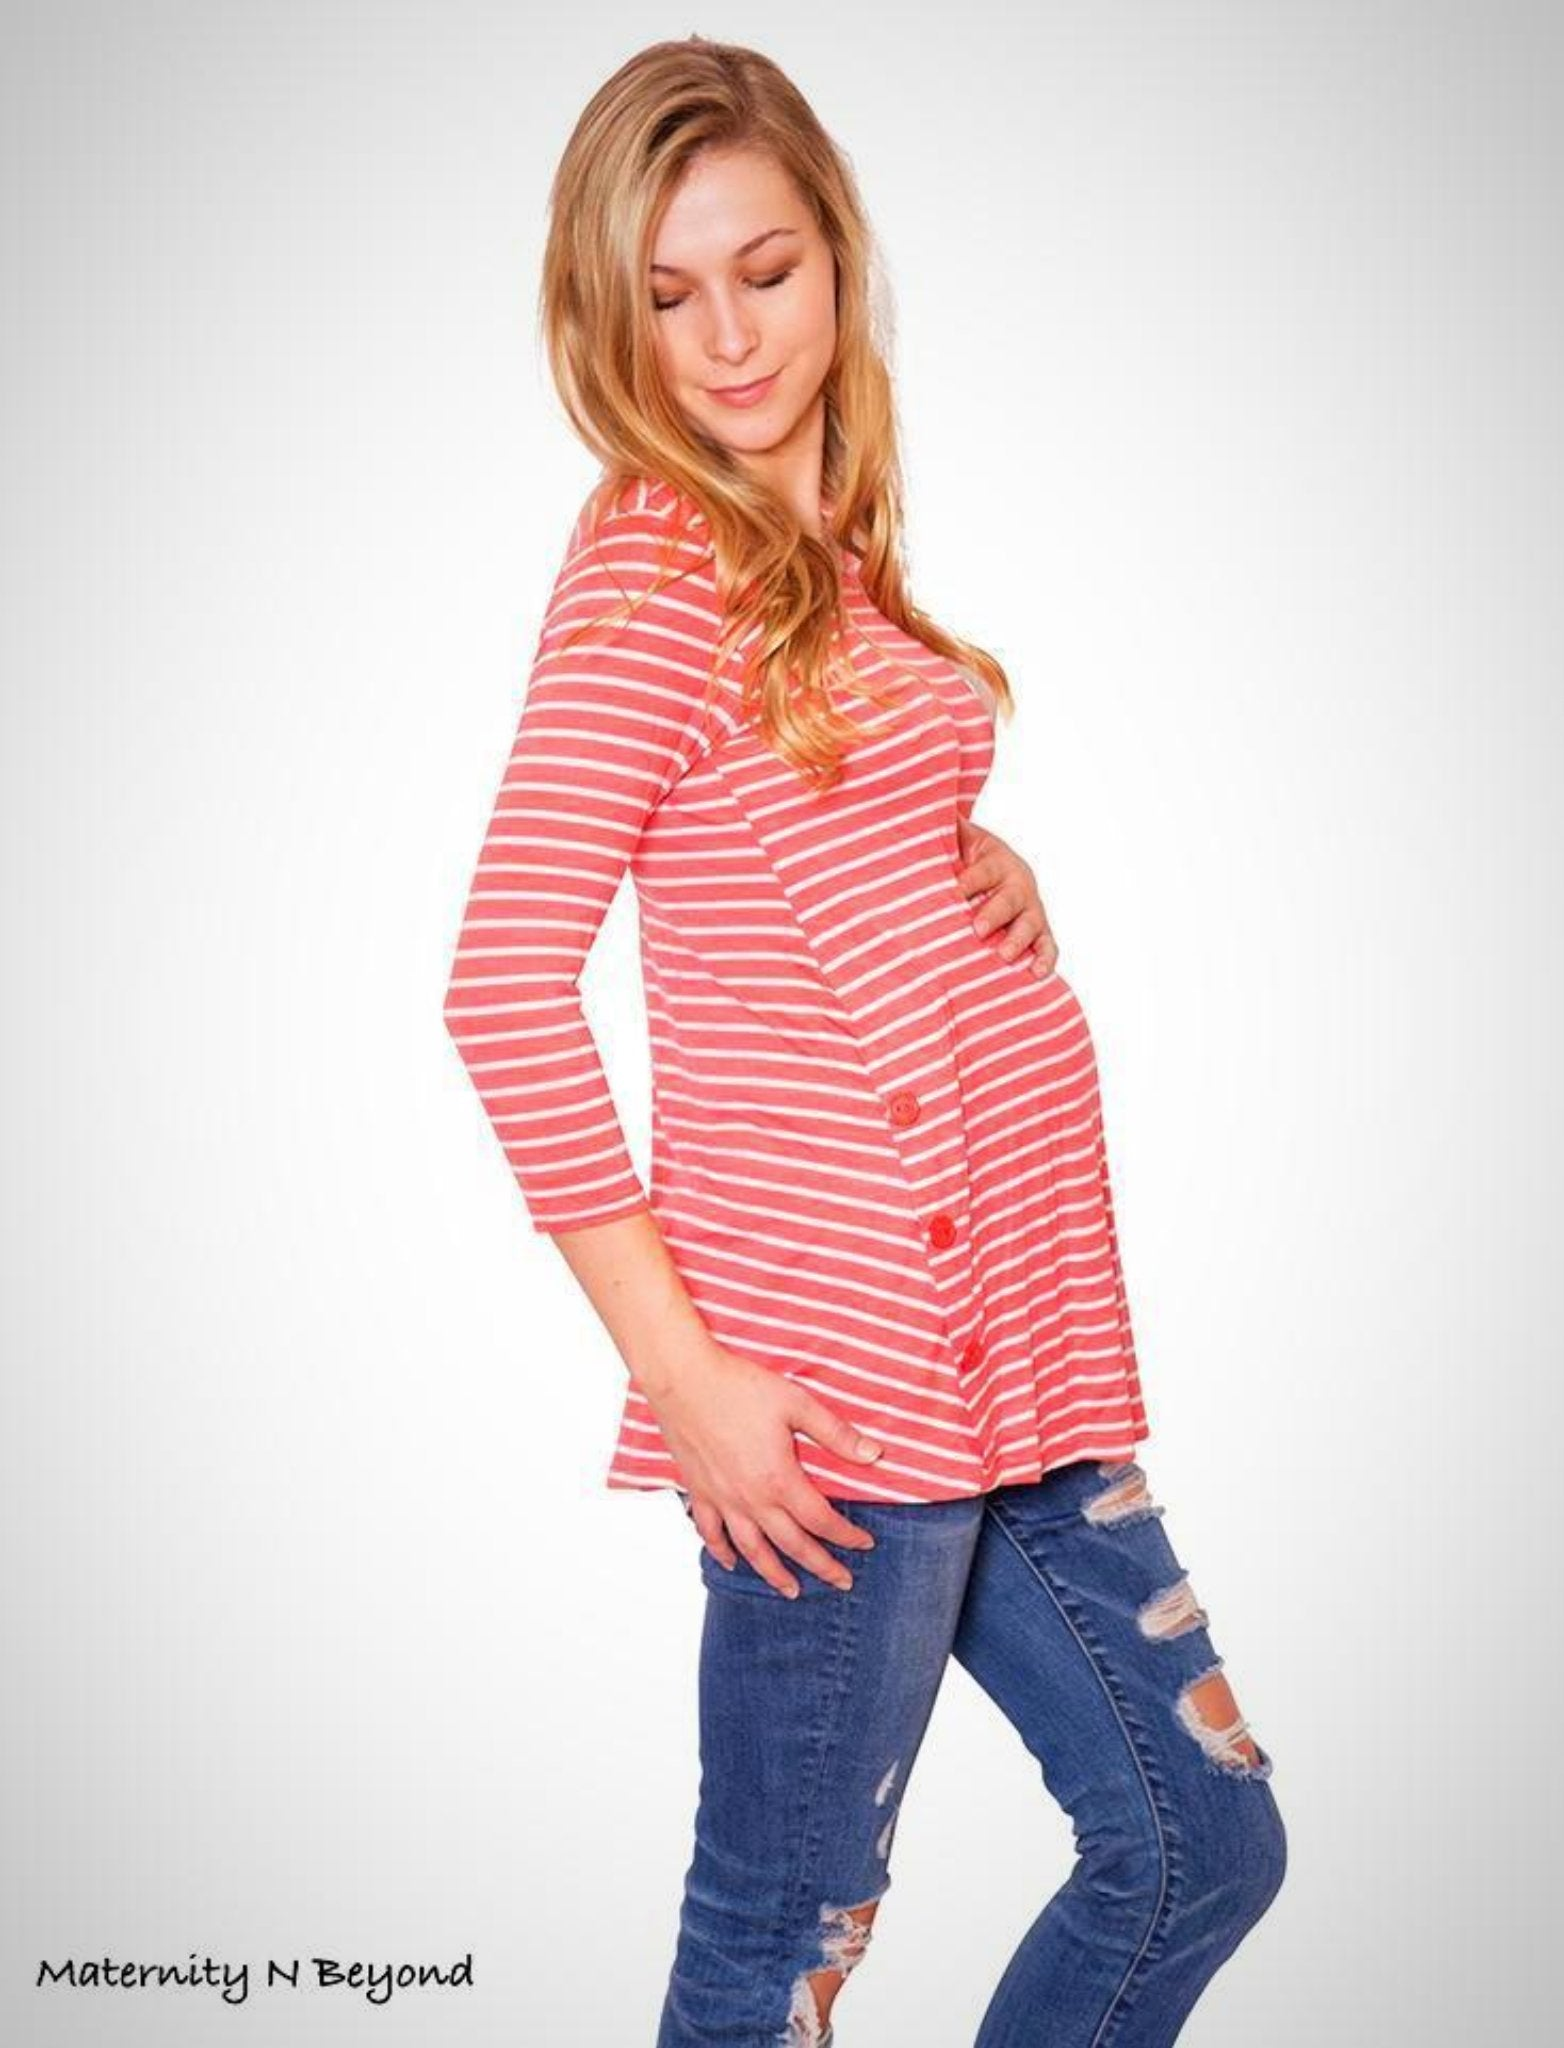 dea8e509f9782 Striped Maternity Top in Coral - Maternity N Beyond